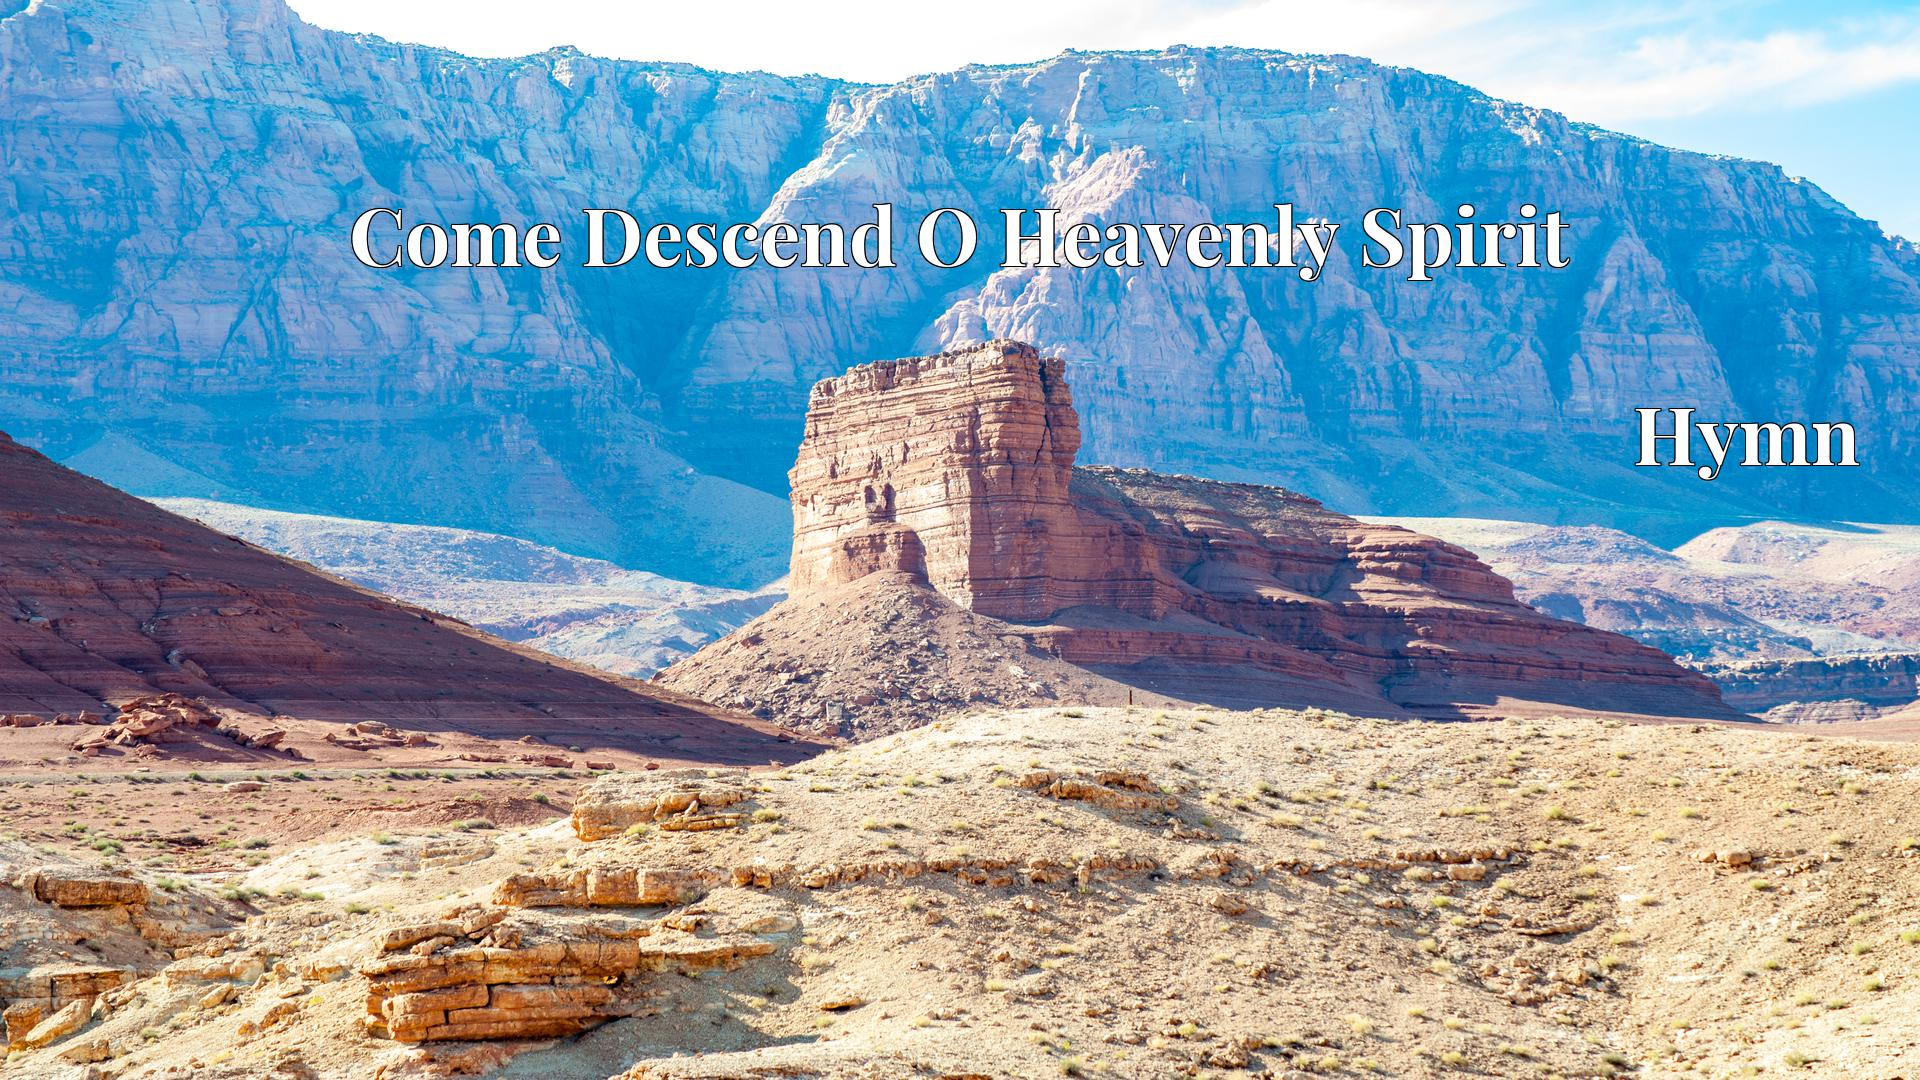 Come Descend O Heavenly Spirit - Hymn